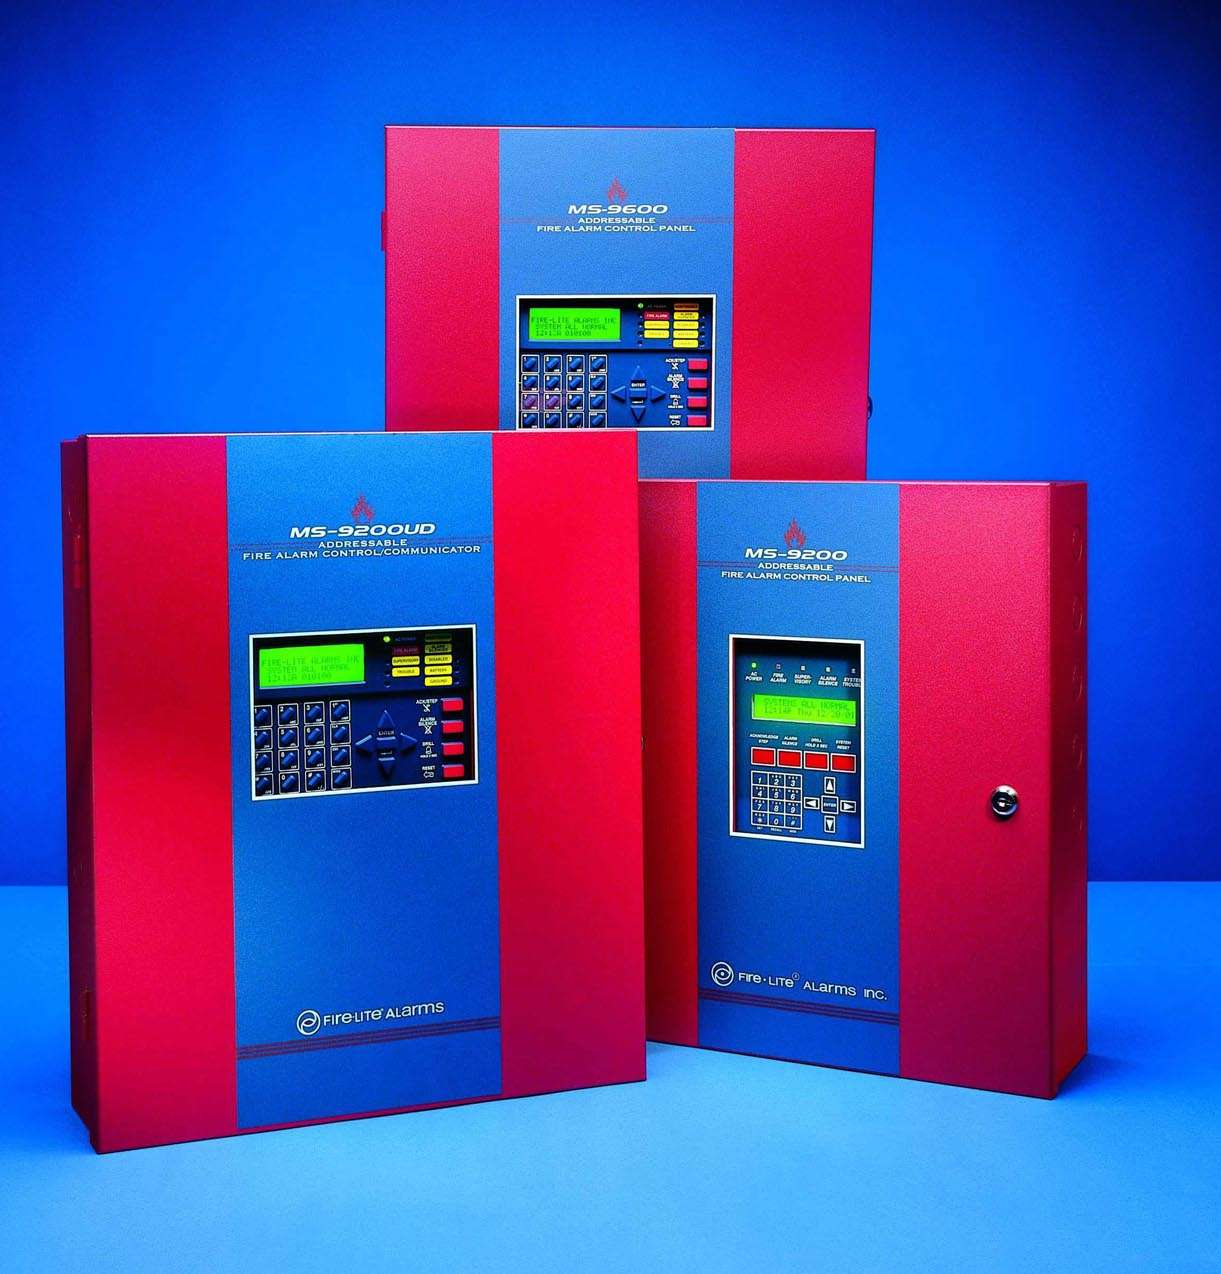 Adt Safewatch Keypad Wiring Diagram Ask Answer Honeywell Alarm Panel Free Engine Image For User Manual Download